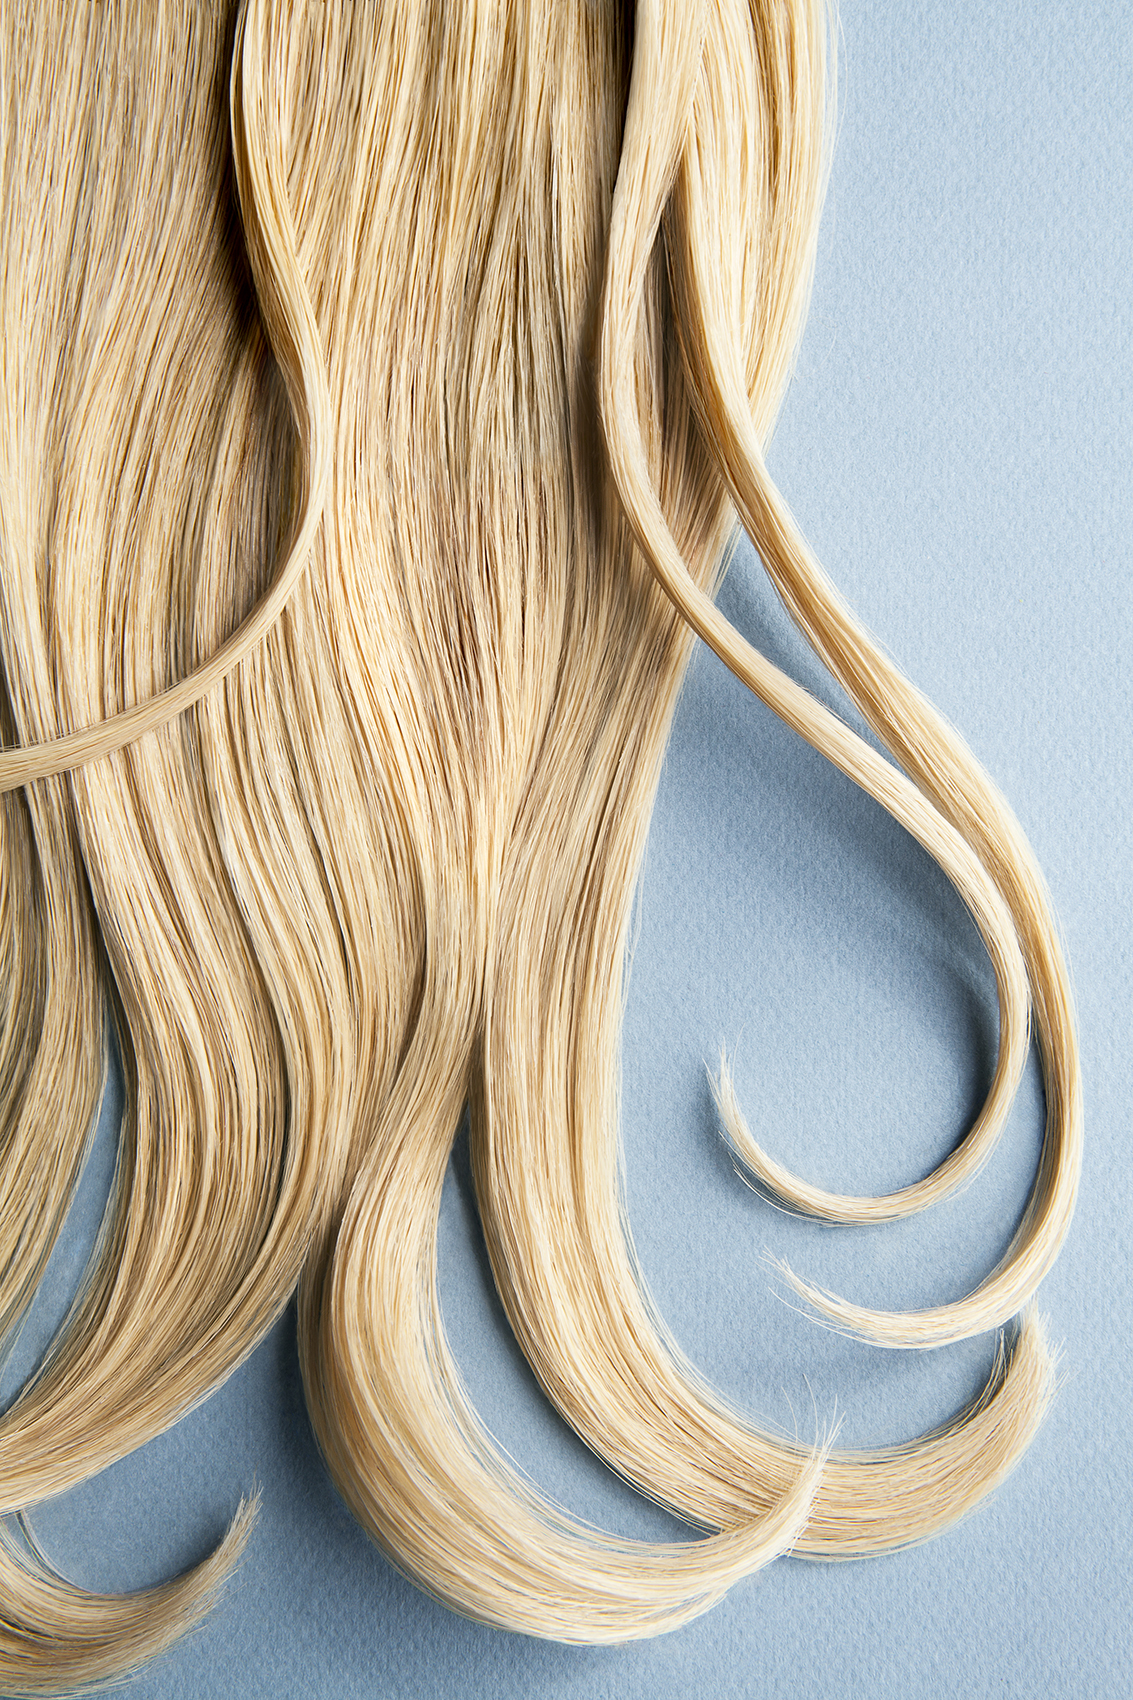 Blond hair on blue background